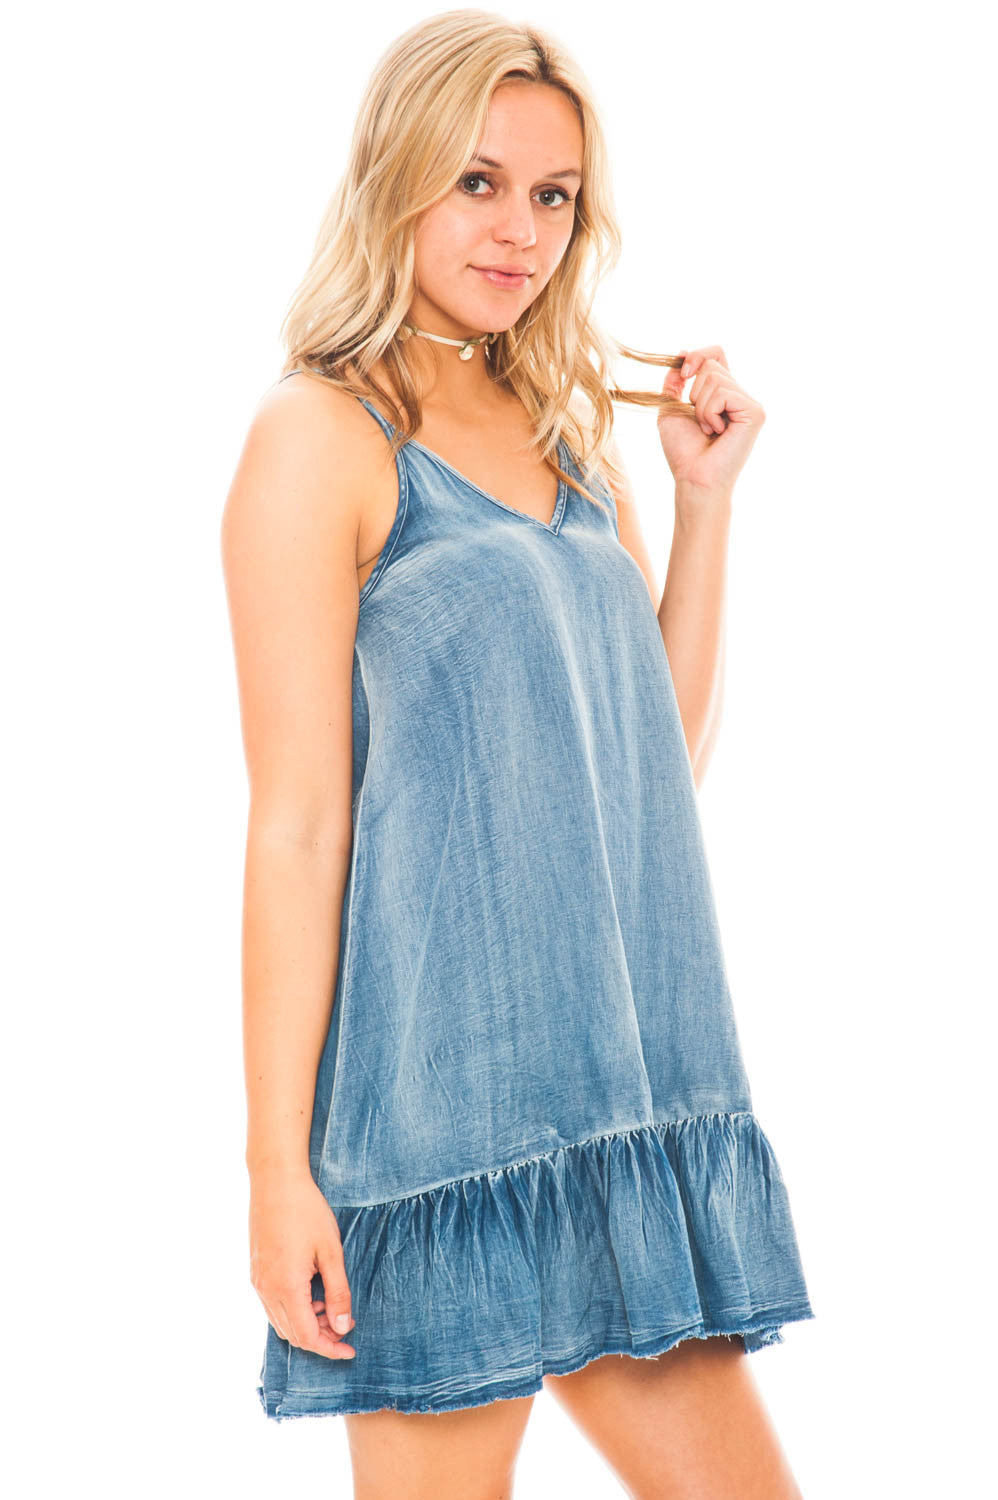 Dress - Boho Chic Denim Dress With Ruffle Hem